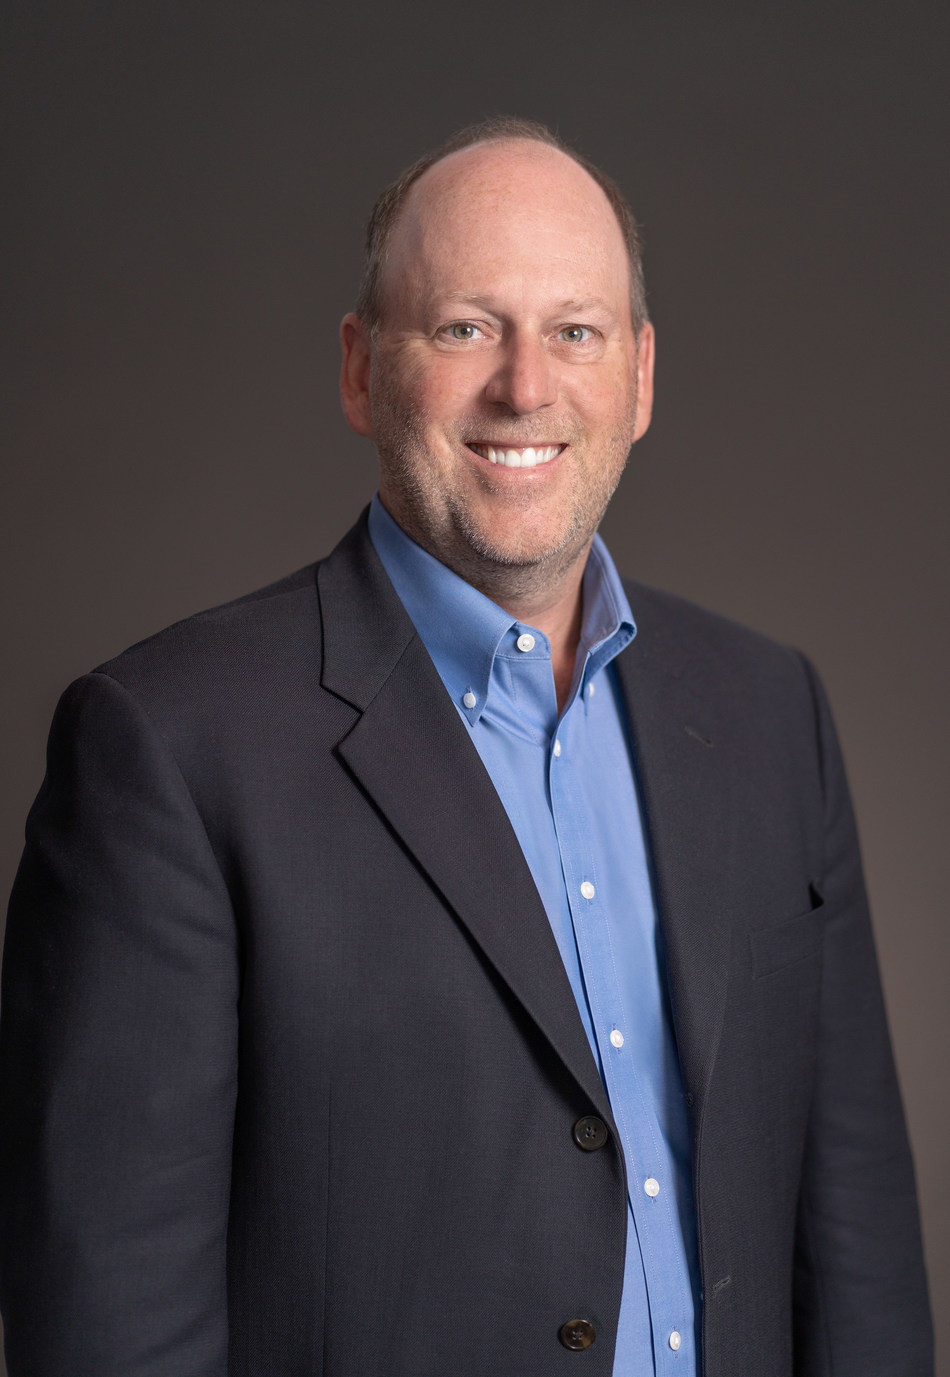 Phil Brace joins Veritas Technologies as executive vice president of the Appliances and Software-defined Storage (SDS) business